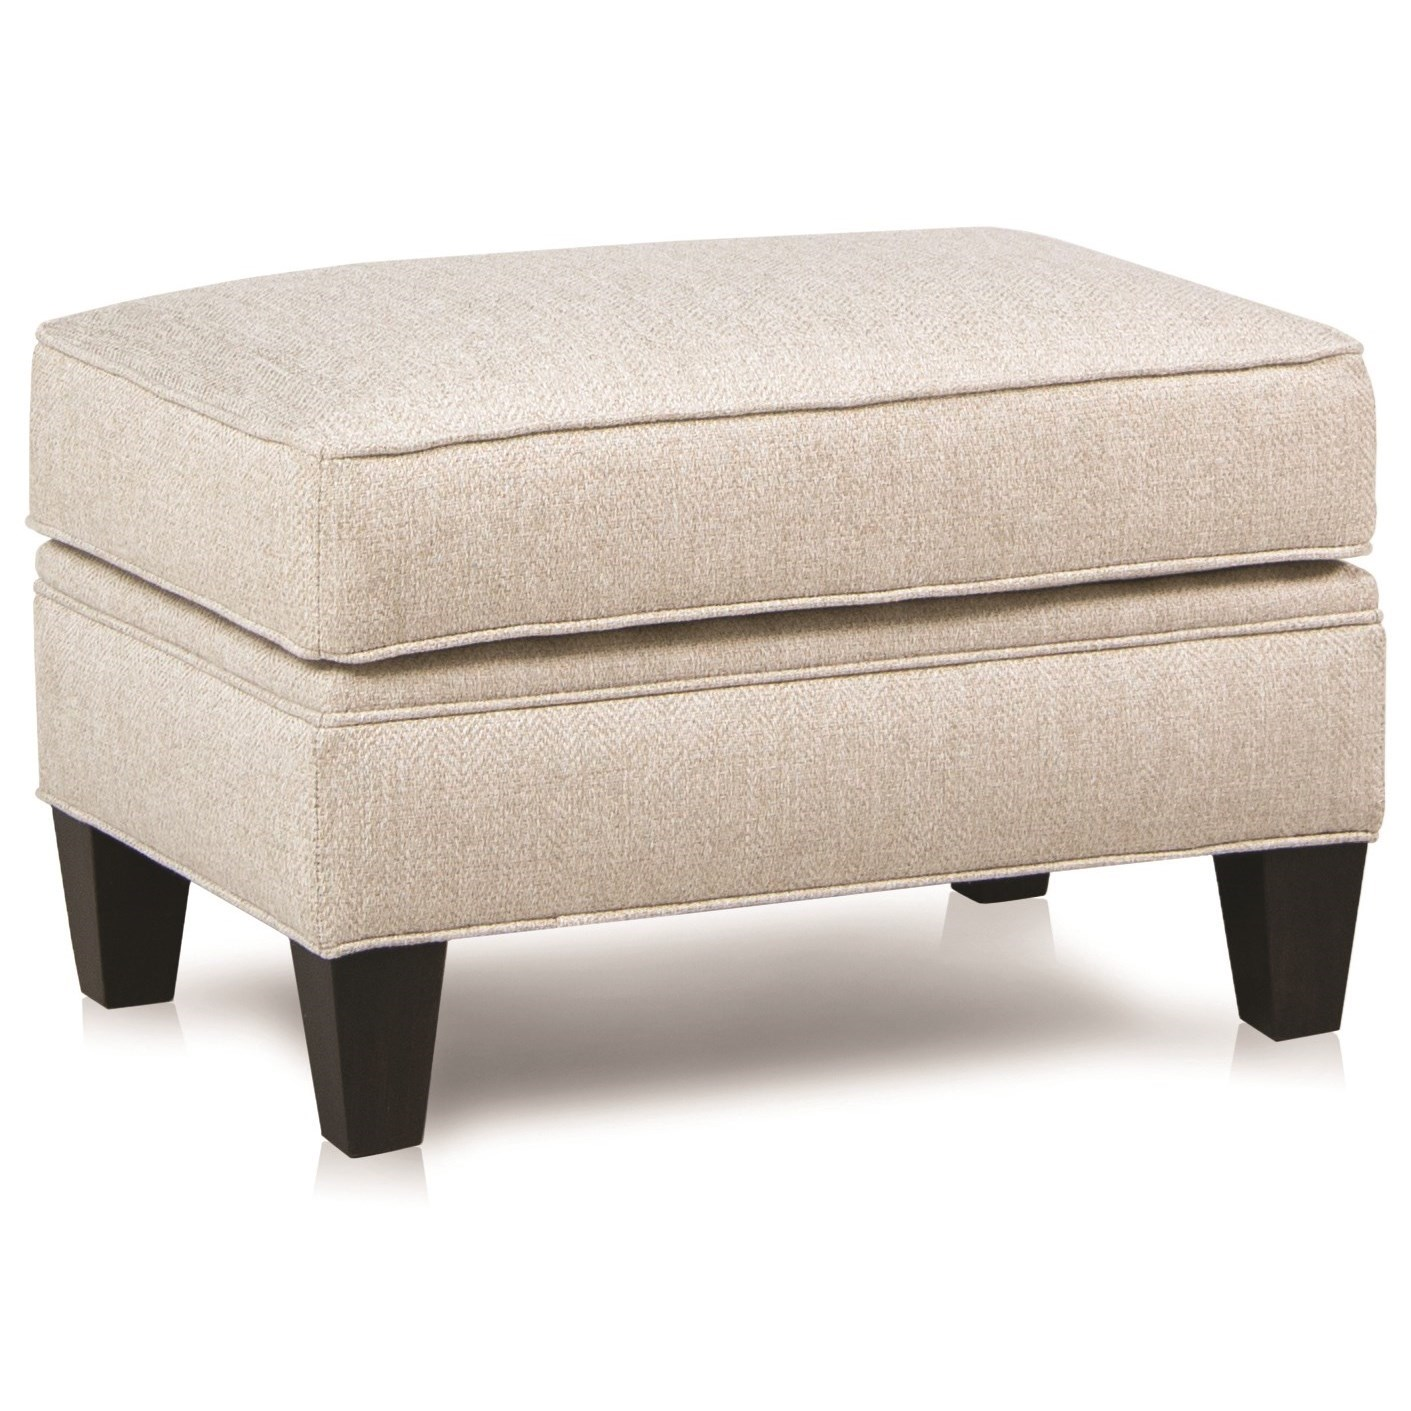 225 Ottoman by Smith Brothers at Rooms for Less